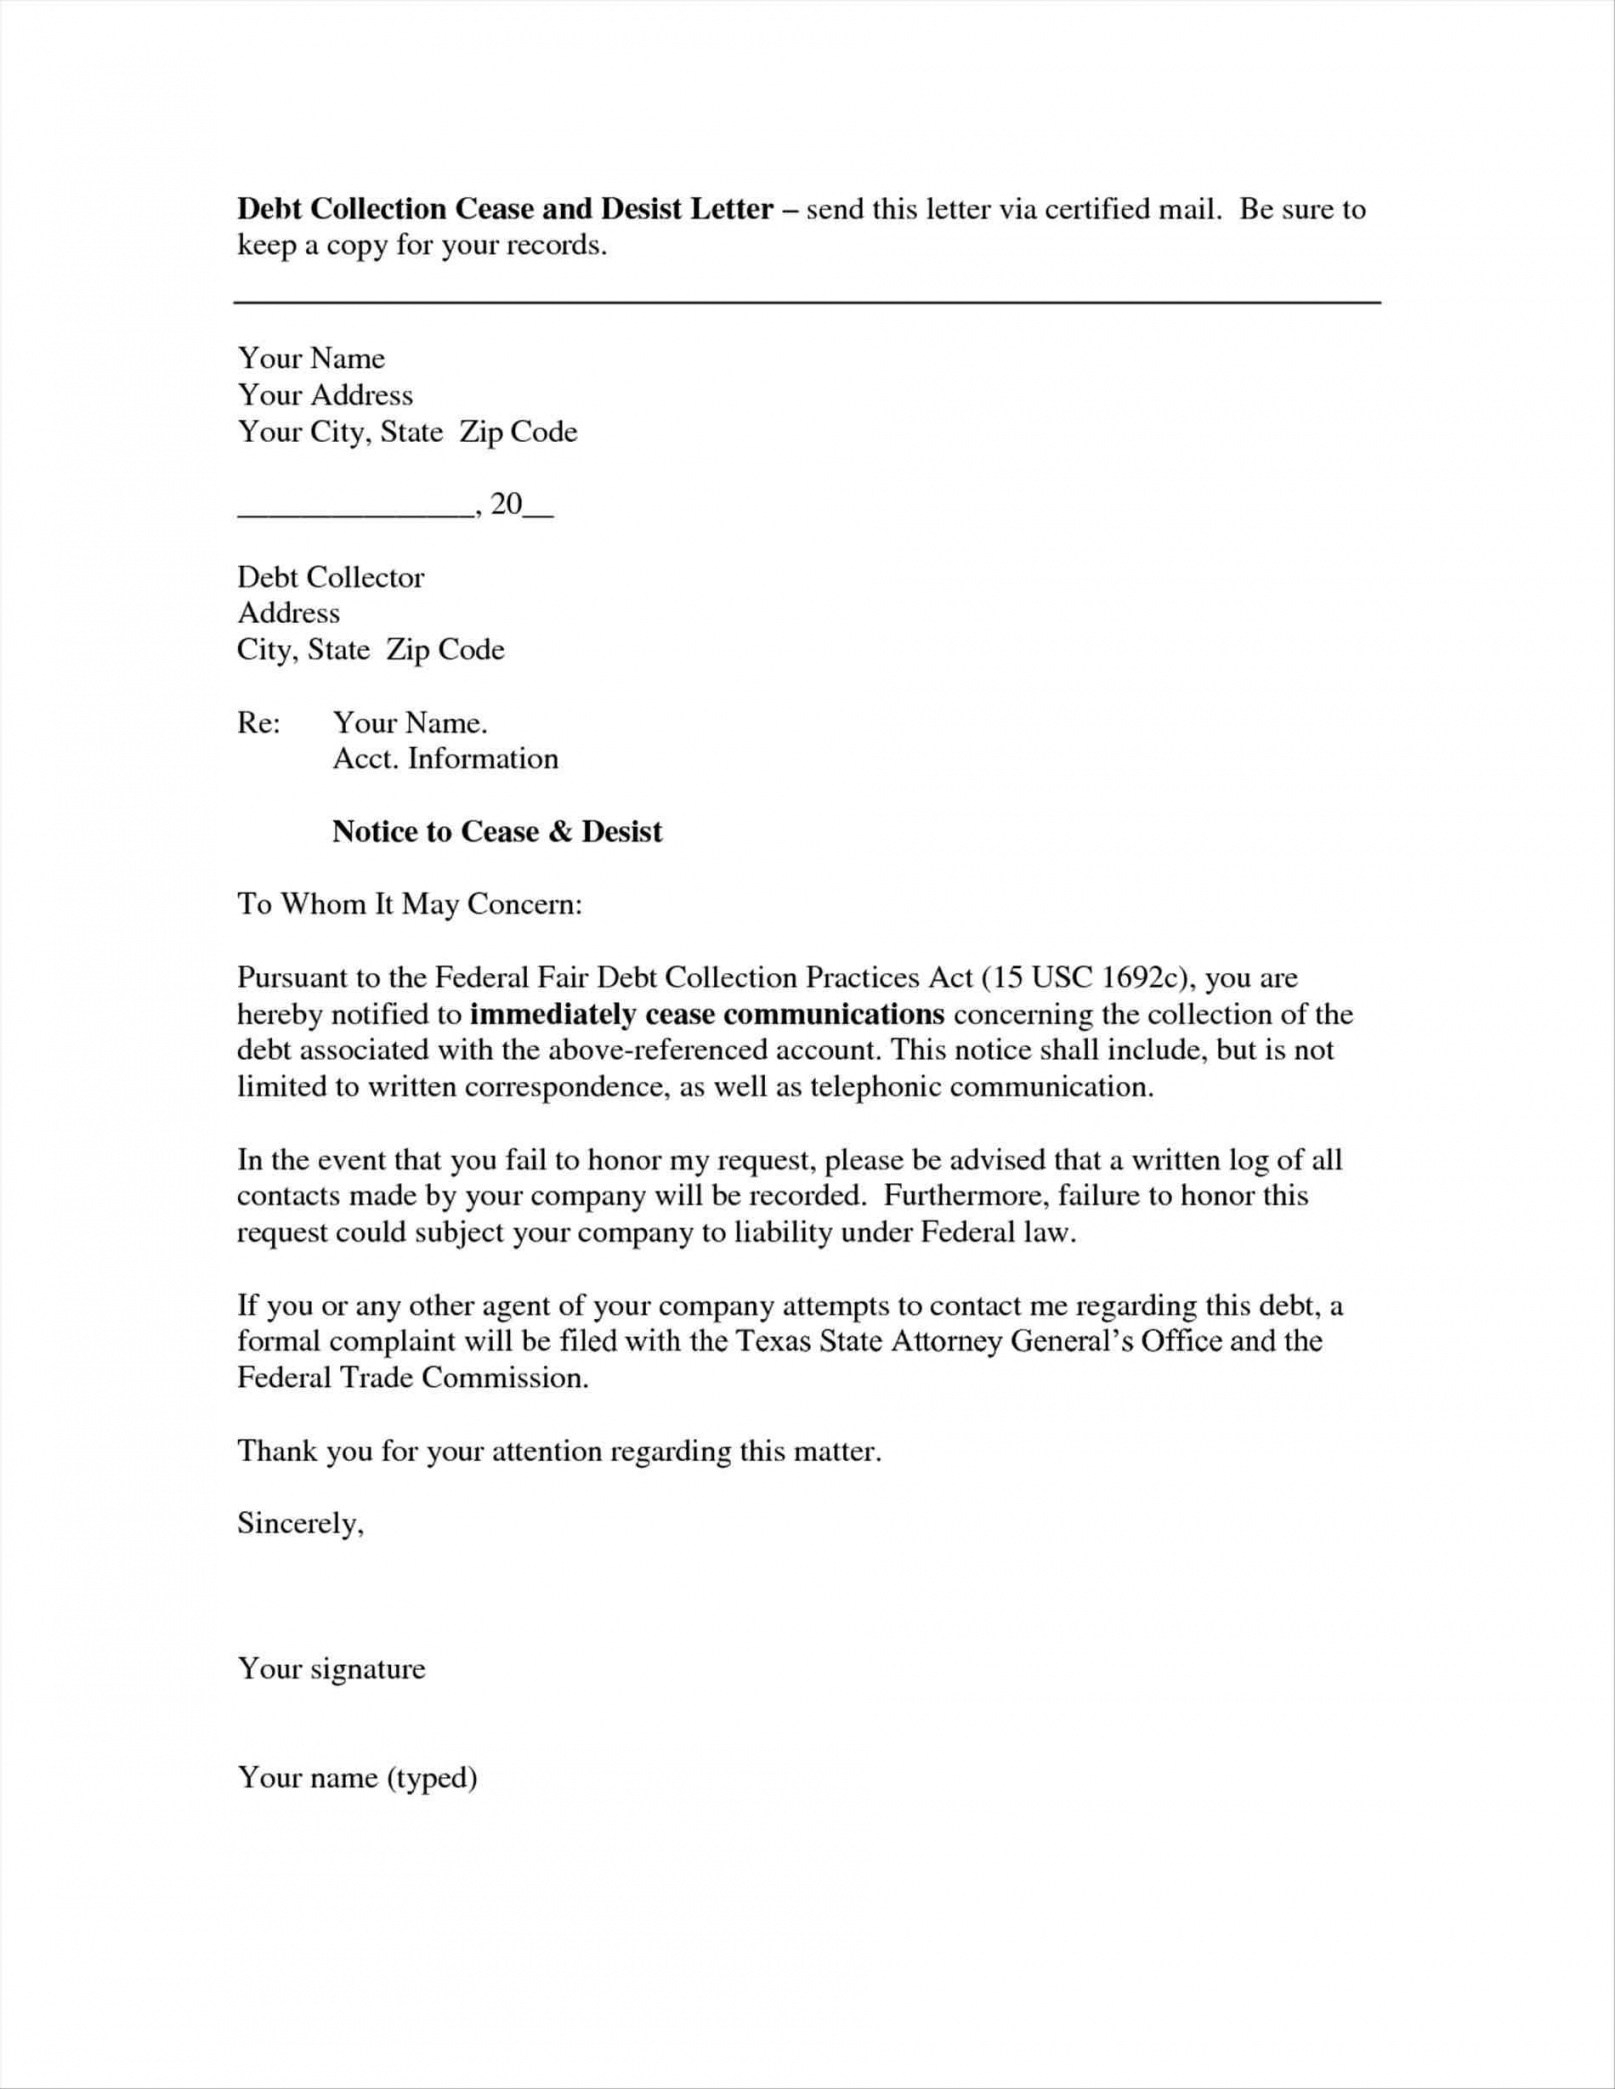 Creditor cease and desist letter template examples letter templates creditor cease and desist letter template how to write debt collection letter letter format formal spiritdancerdesigns Gallery